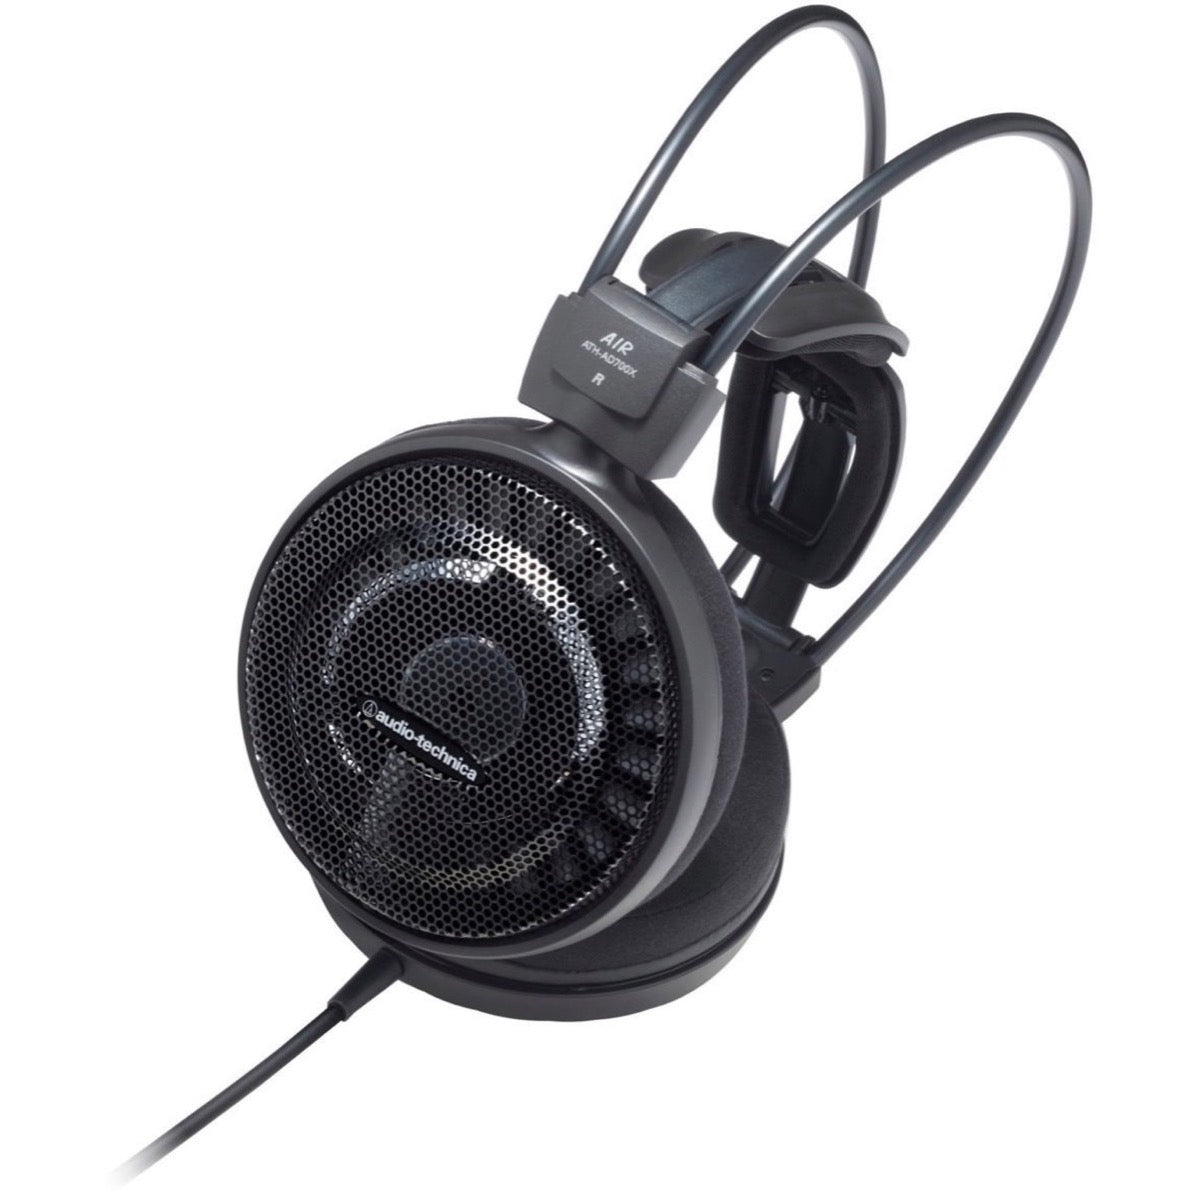 Audio-Technica ATH-AD700X Hi-Fidelity Headphones